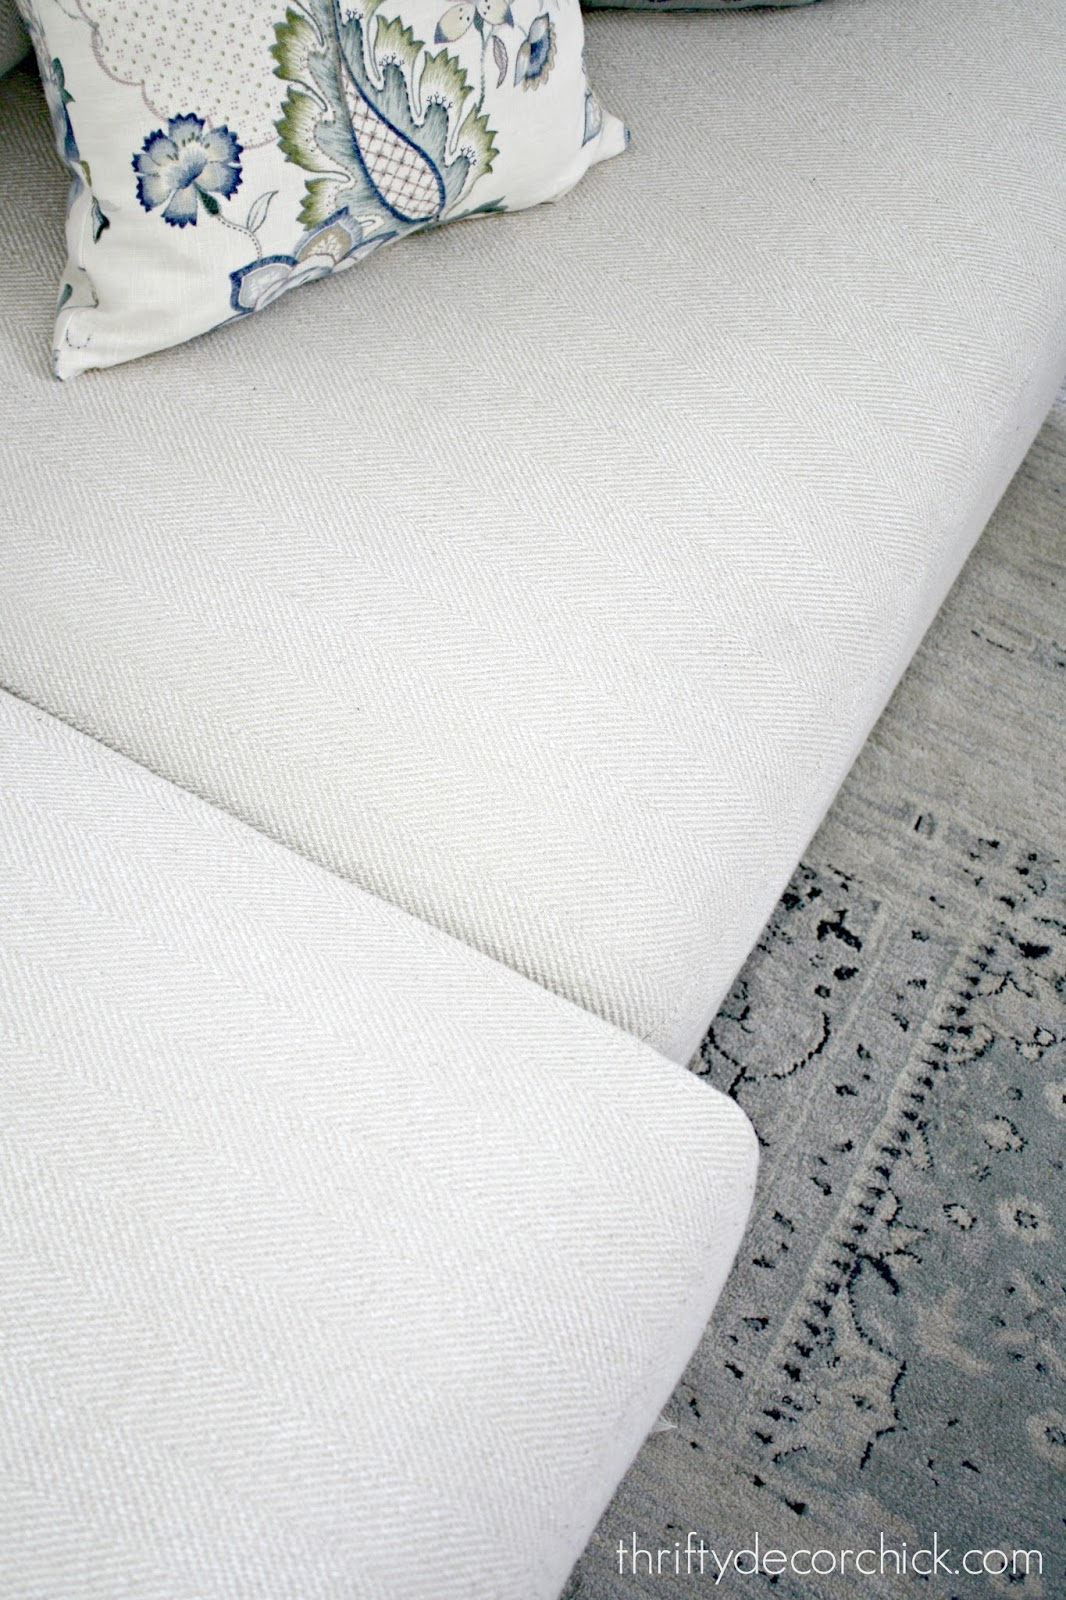 Simple trick for sliding sofa cushions